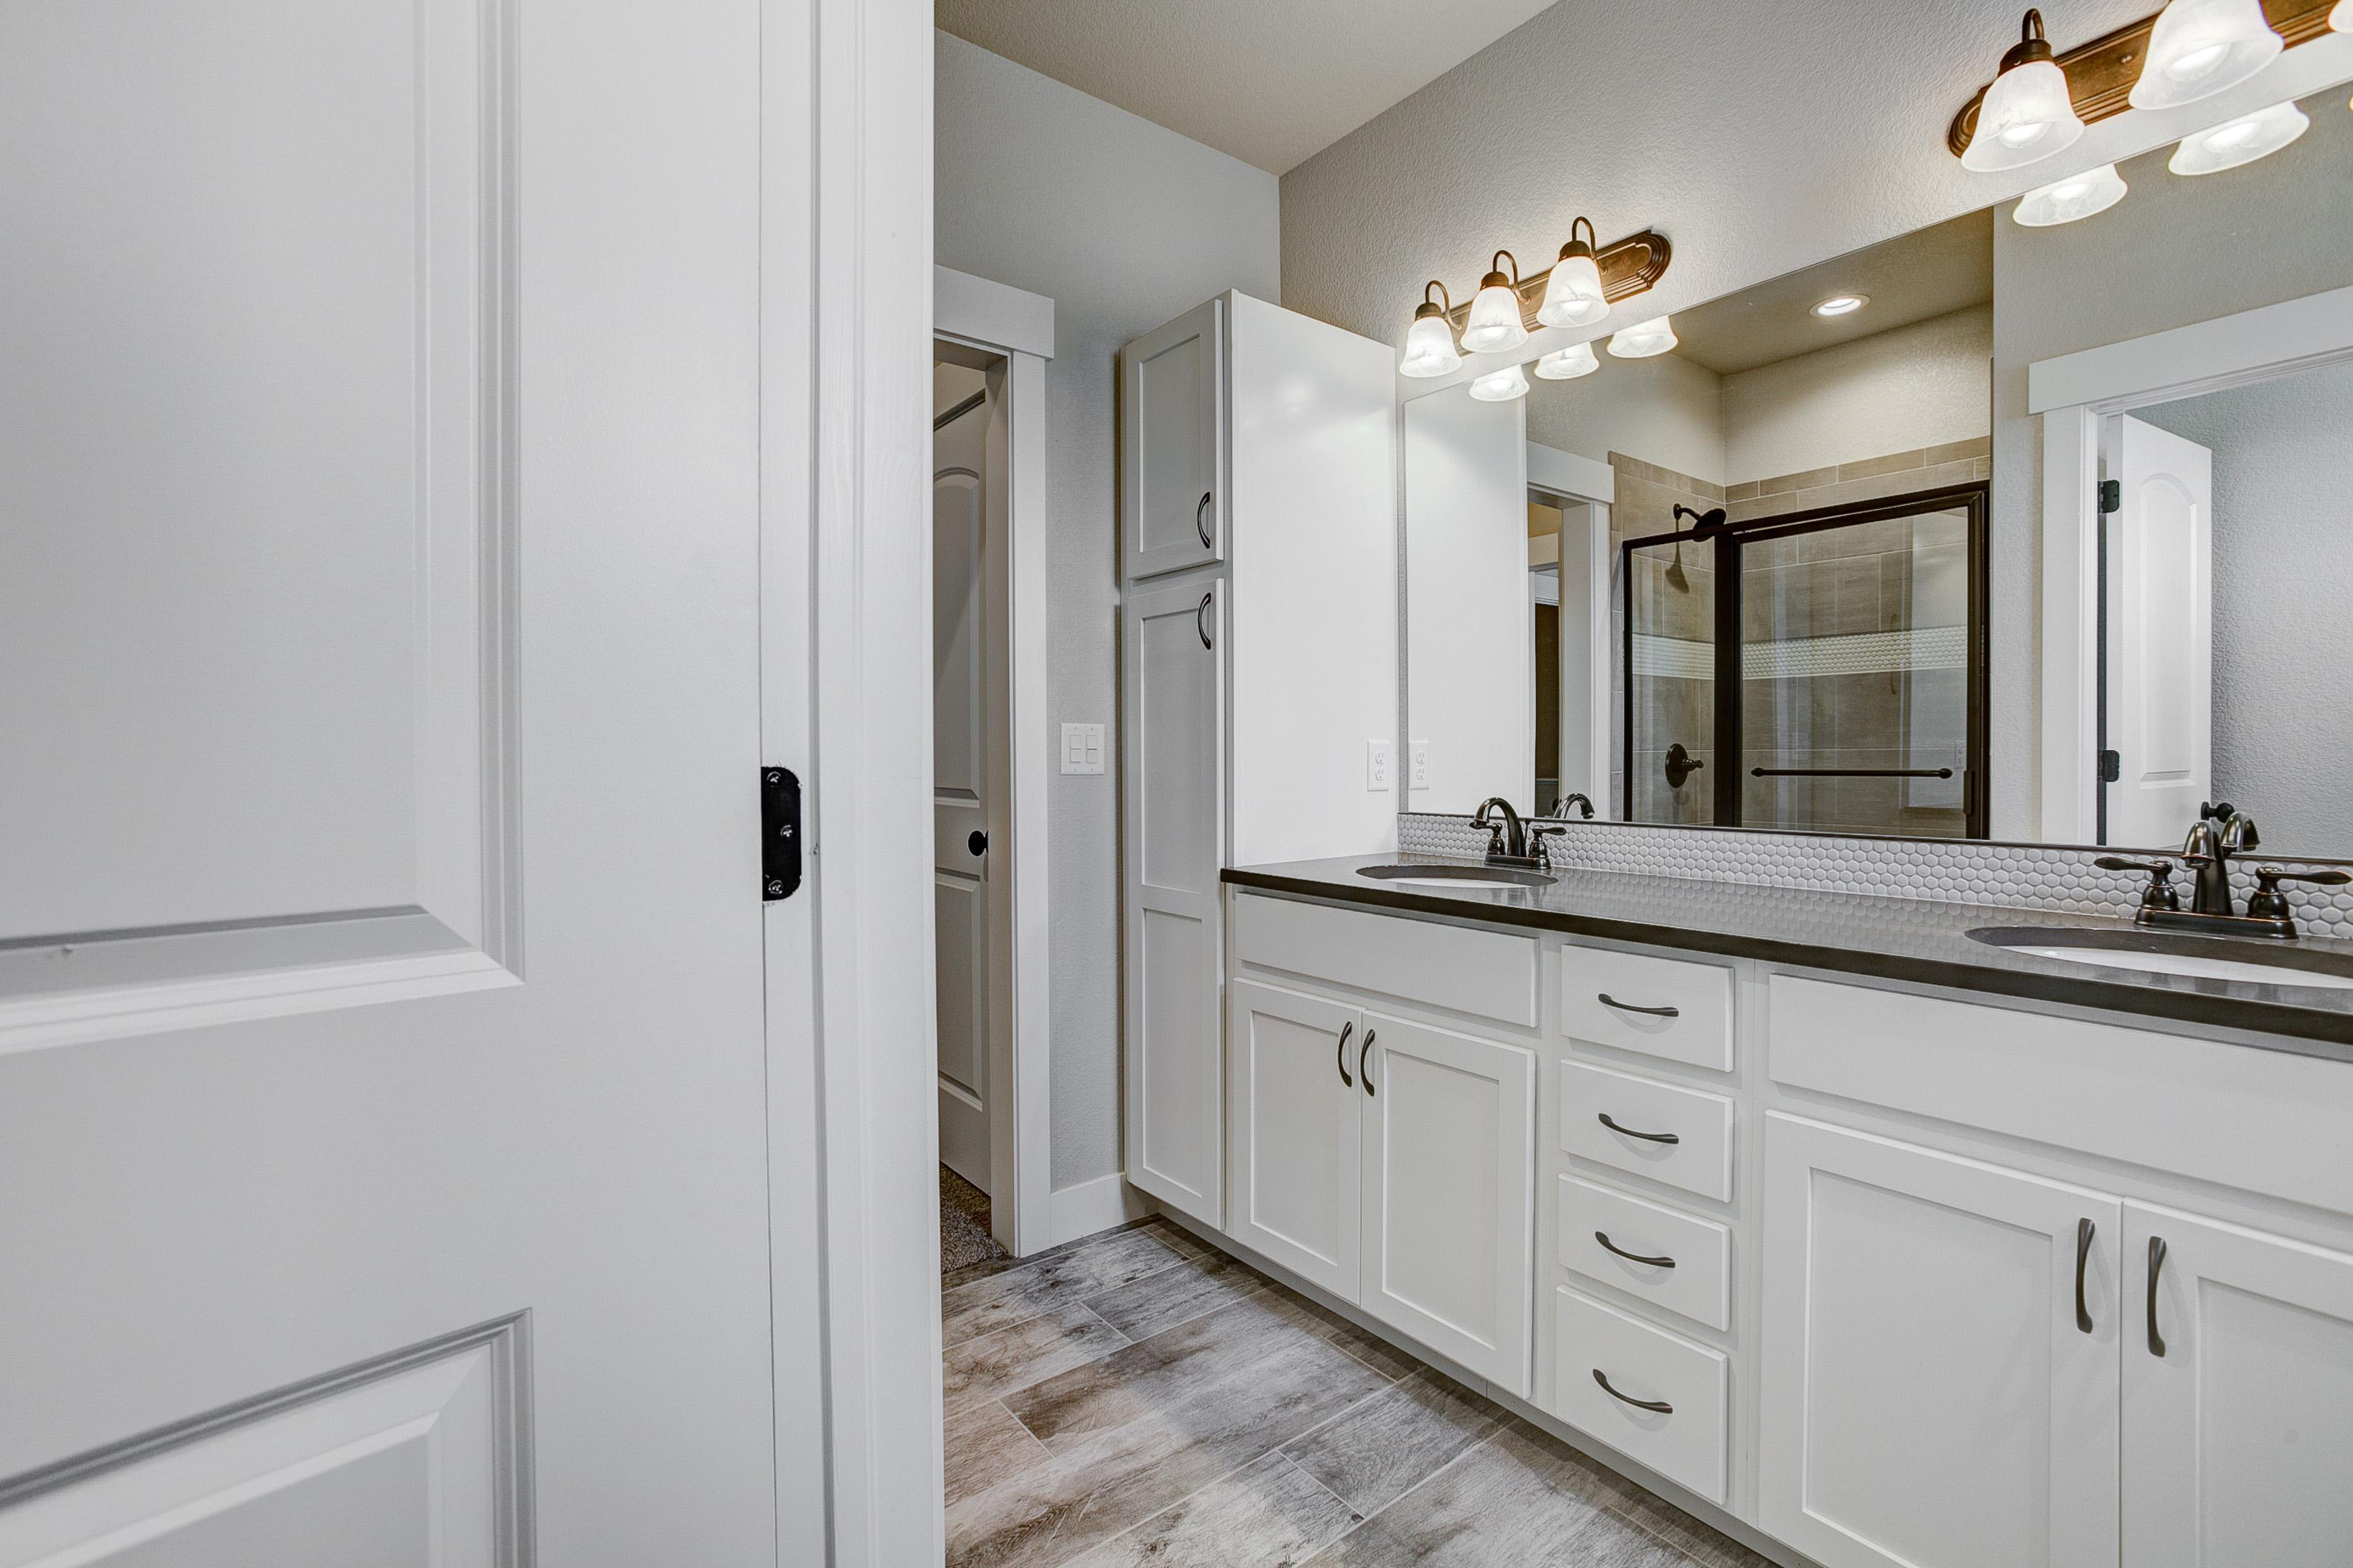 Bathroom featured in the Breakwater By Landmark Homes  in Fort Collins-Loveland, CO